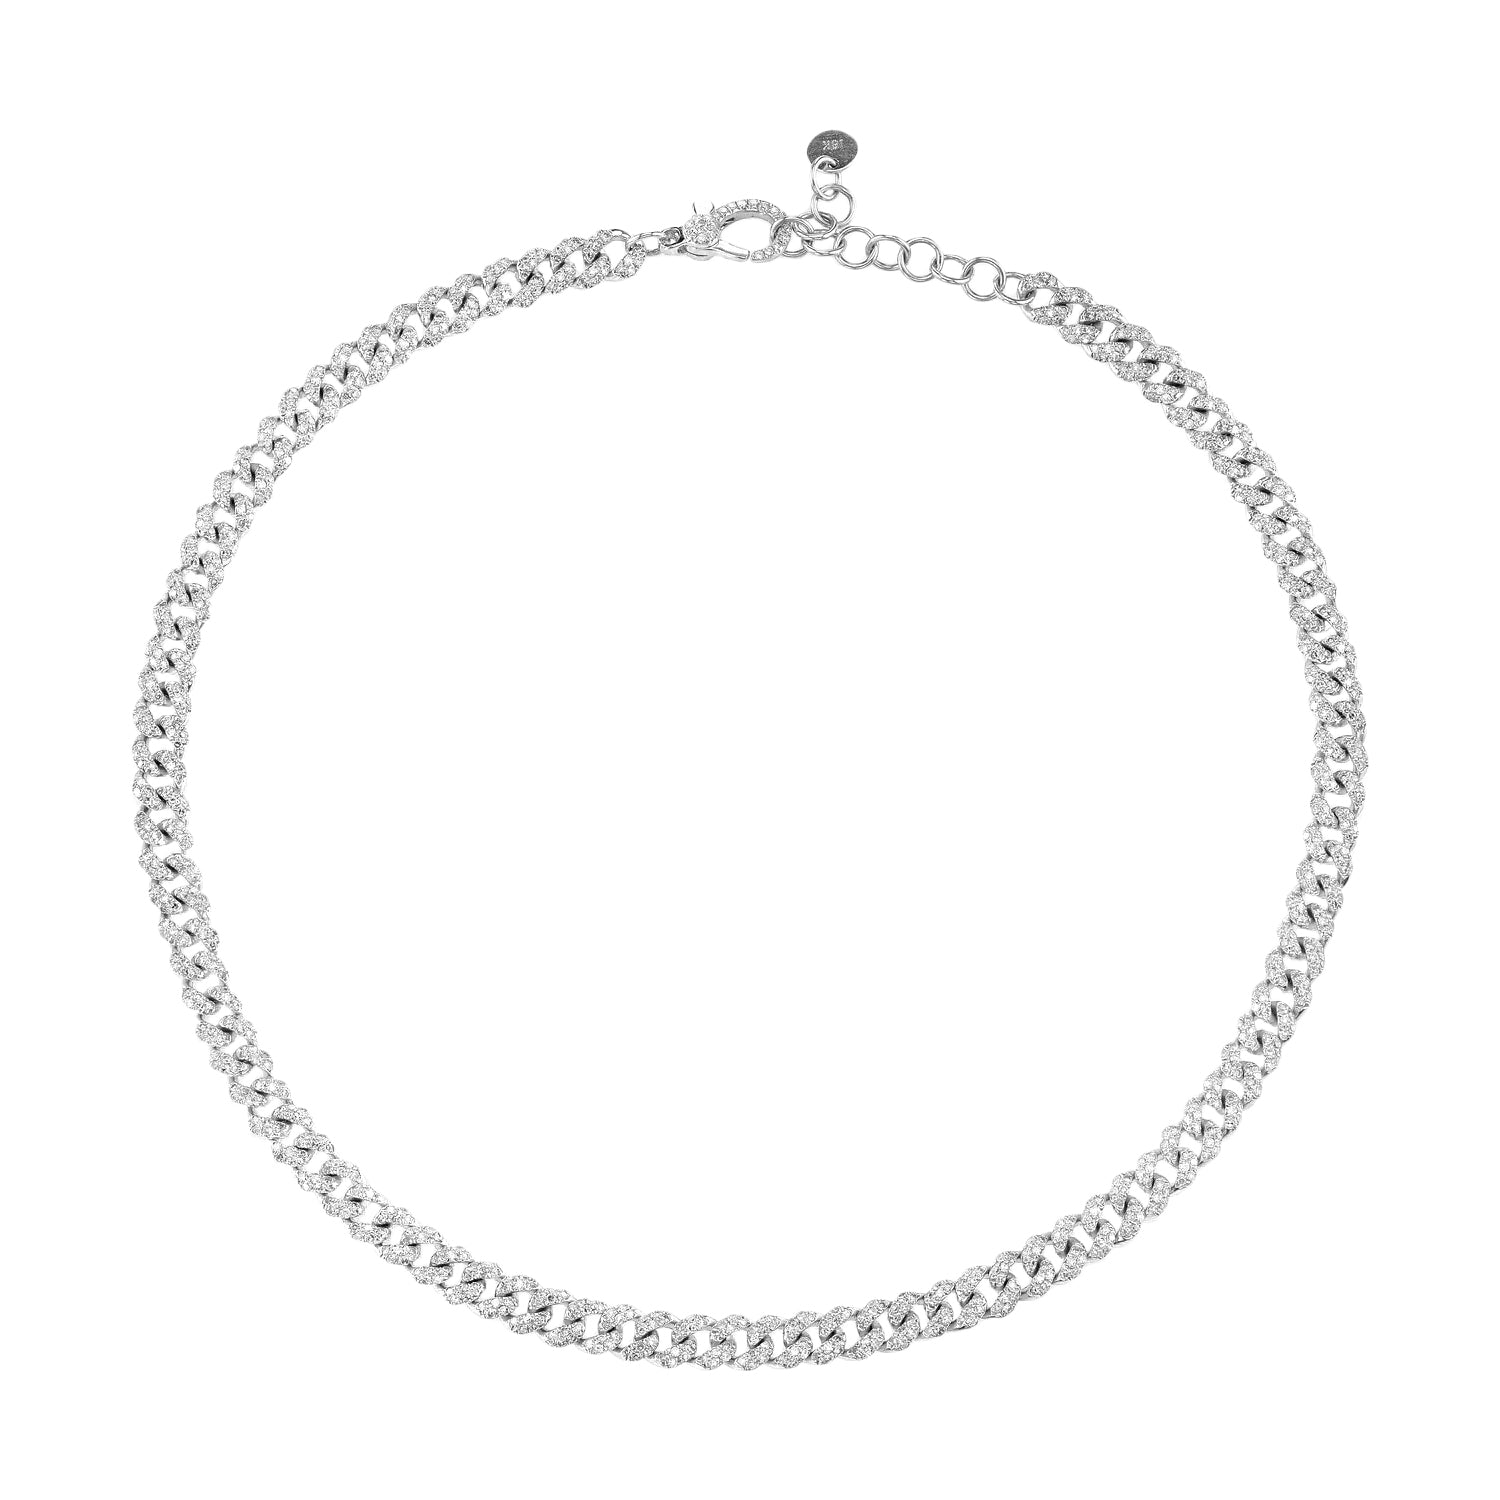 Mini Pave Link Choker - Shay - Necklaces | Broken English Jewelry